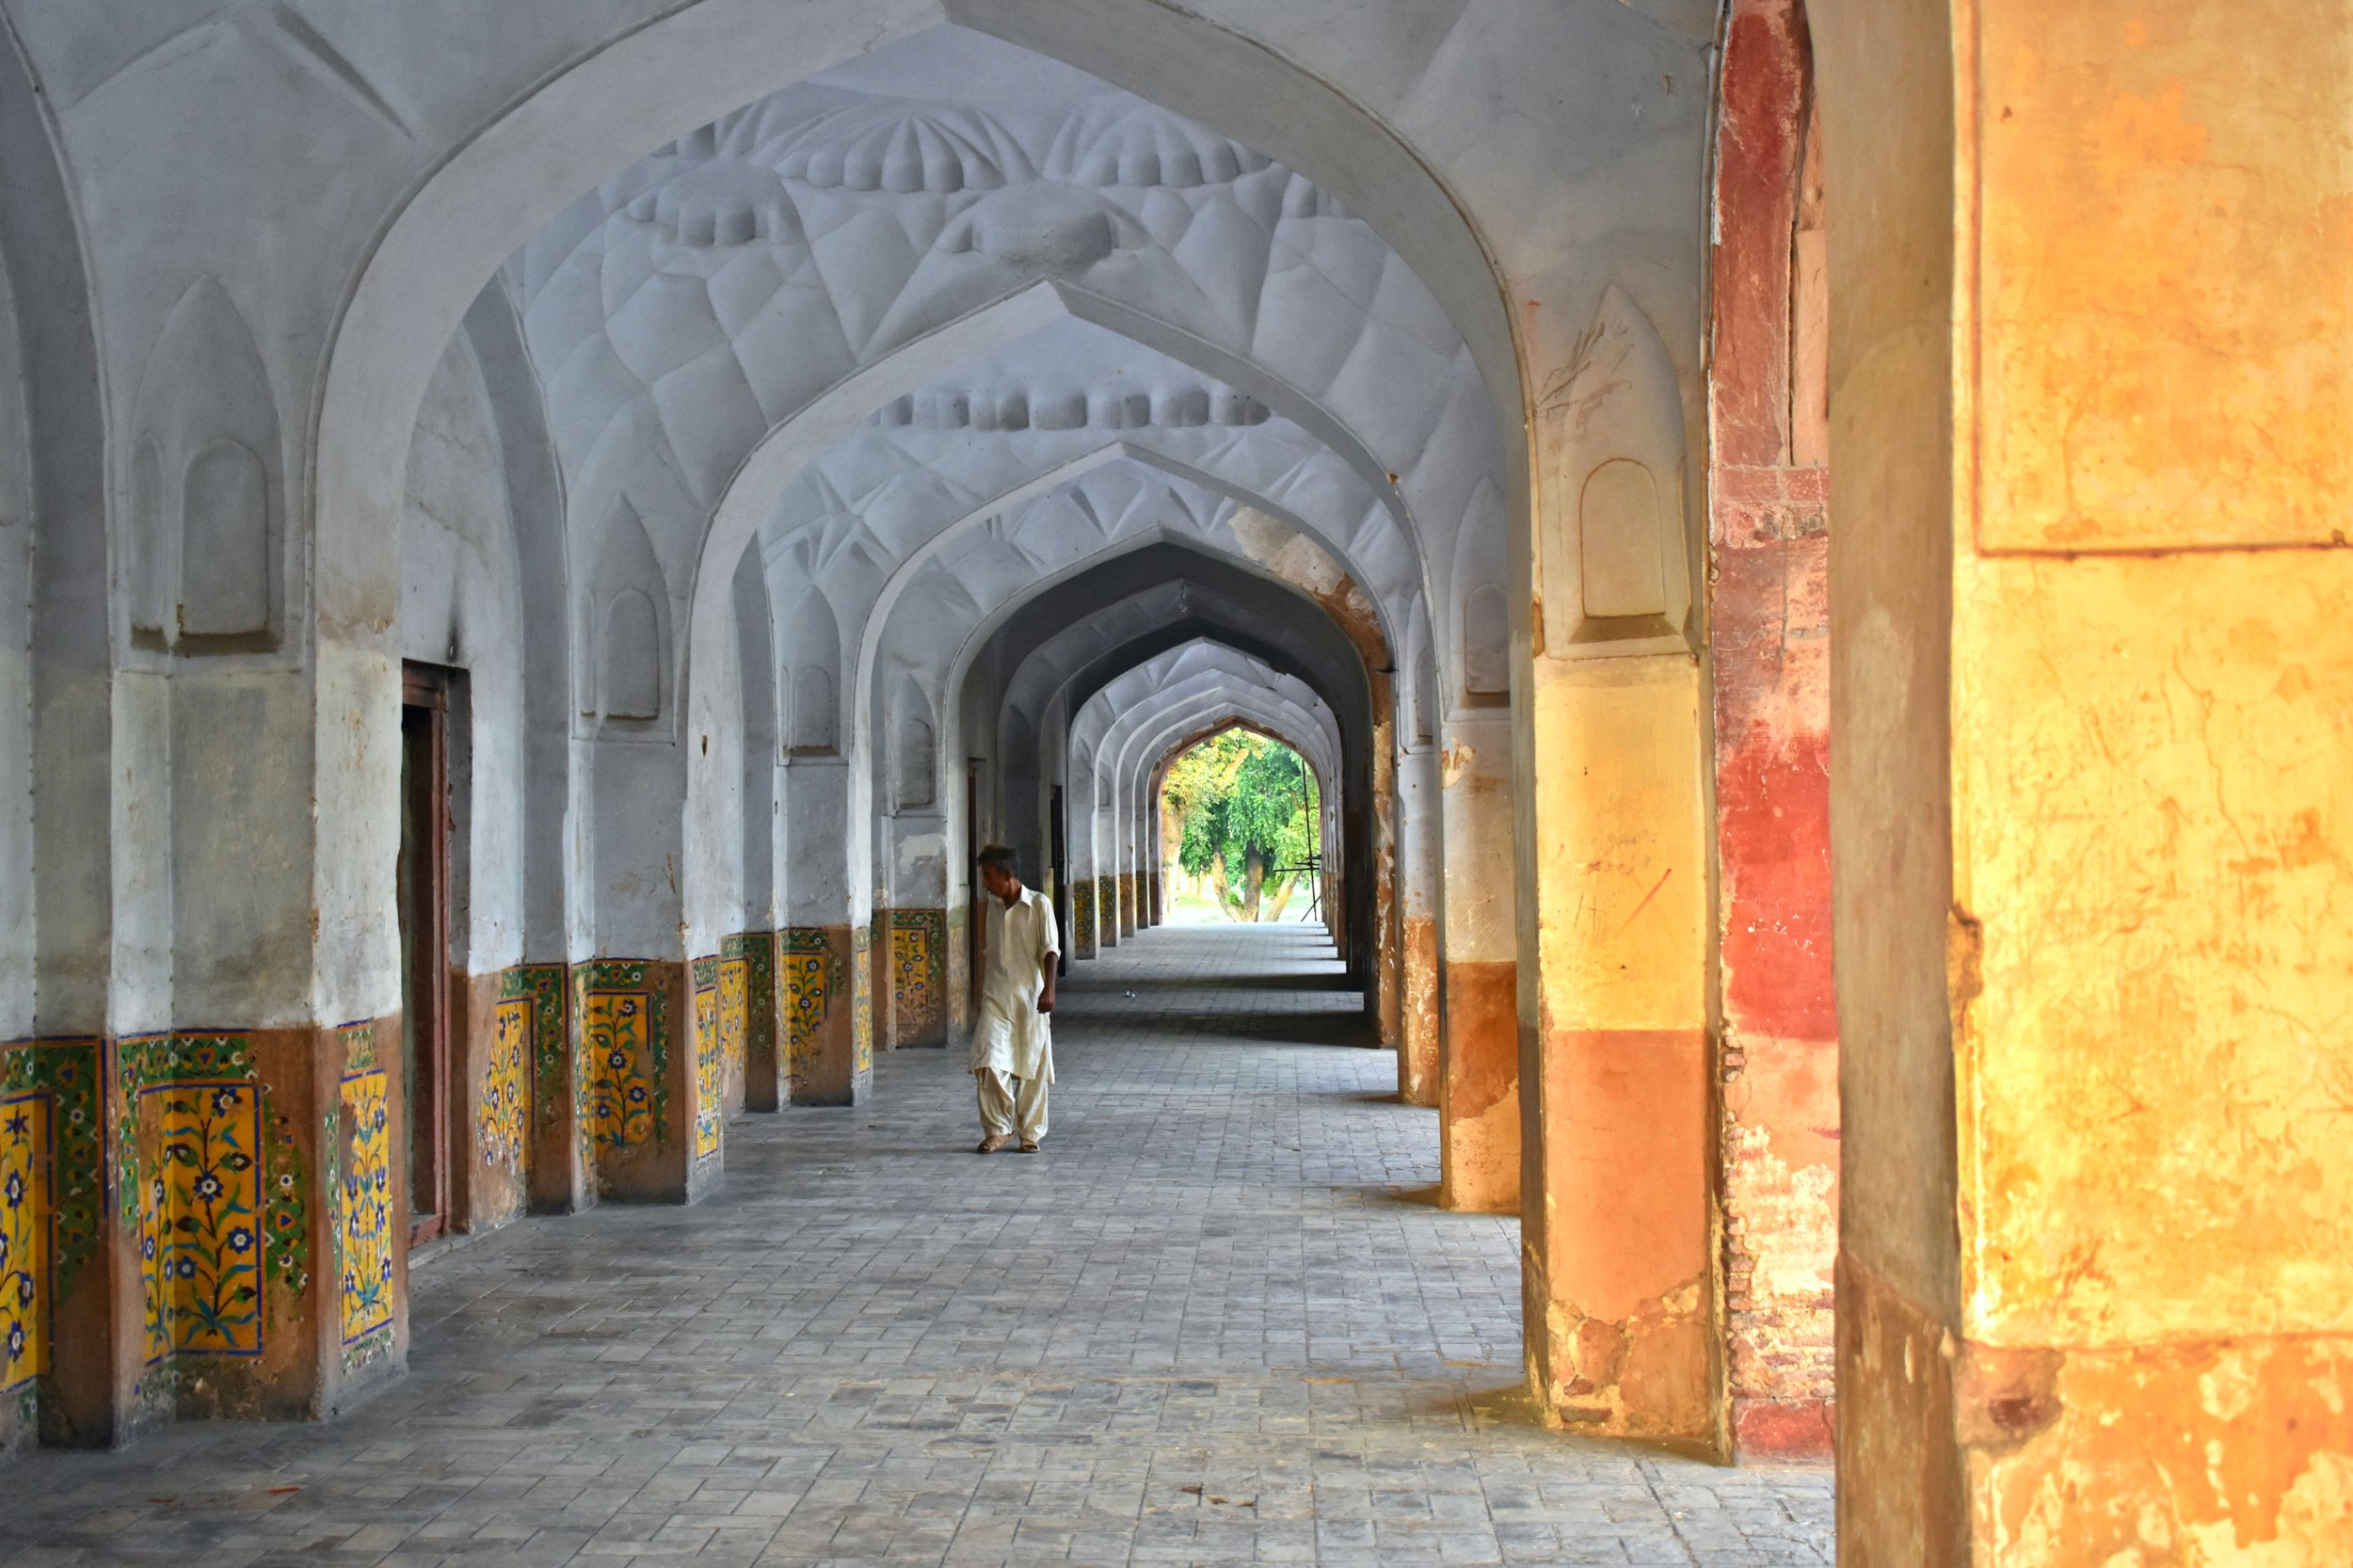 A local wanders through the hallway of Jahangir's Tomb.